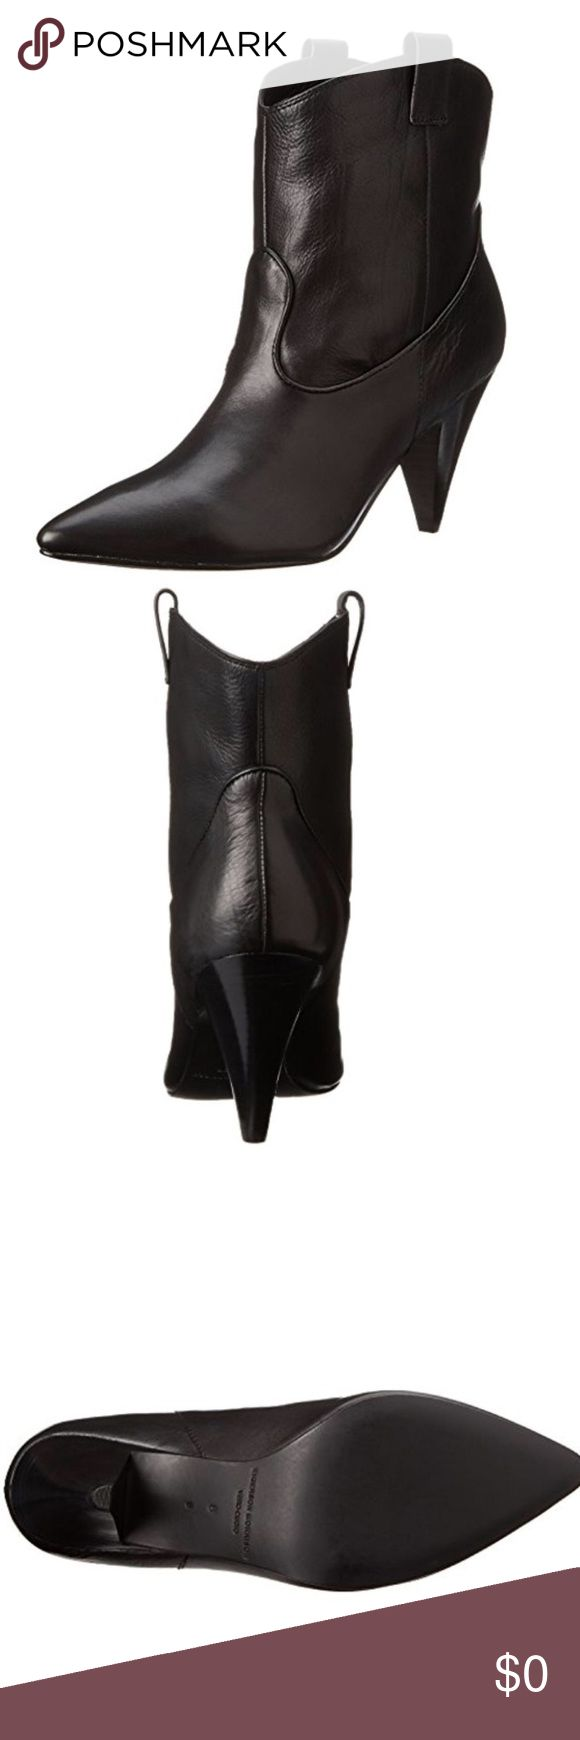 """Sigerson Morrison $550 Felix 2 Black LEATHER Boots New with box.   Sigerson Morrison Felix 2 Black Cowboy Western Ankle Boots  Size: 7 Retail: $550.00  Heel Height: 3 1/4"""" Platform Height: 1/4"""" Shaft Height: 6 1/2"""" Shaft Width: 11"""" Sigerson Morrison Shoes Ankle Boots & Booties"""